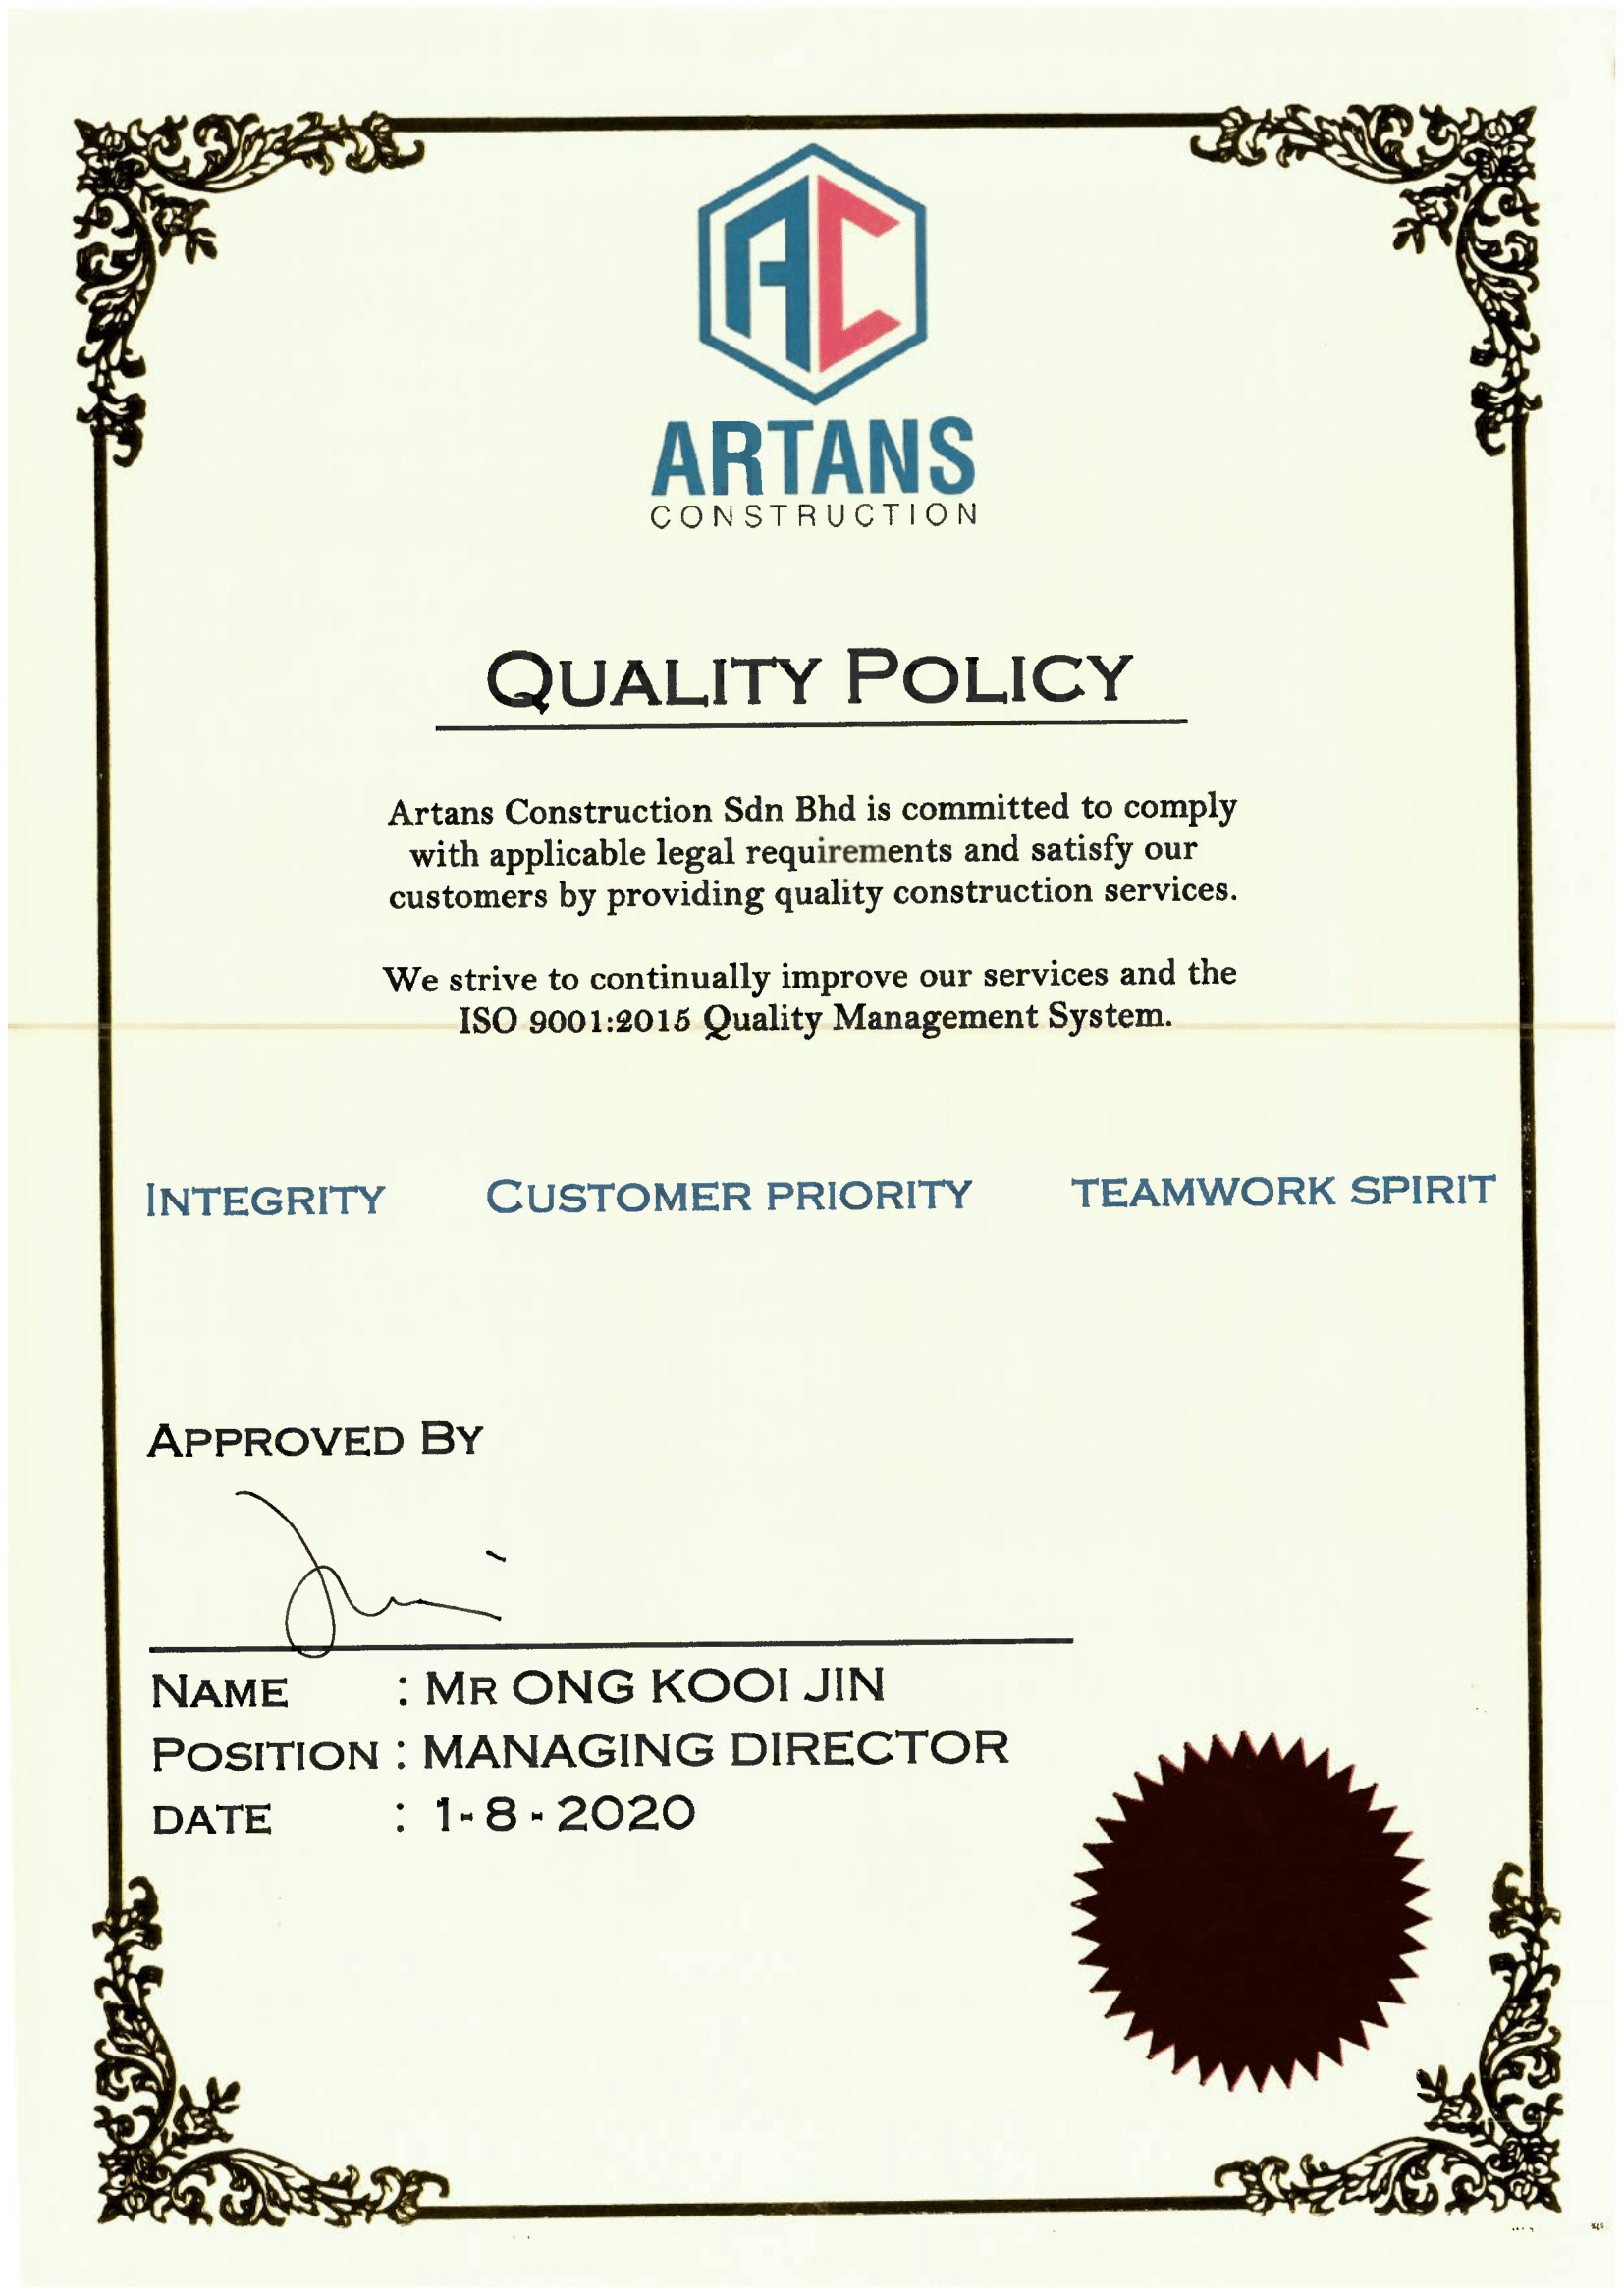 ISO 9001:2015 - Quality Policy